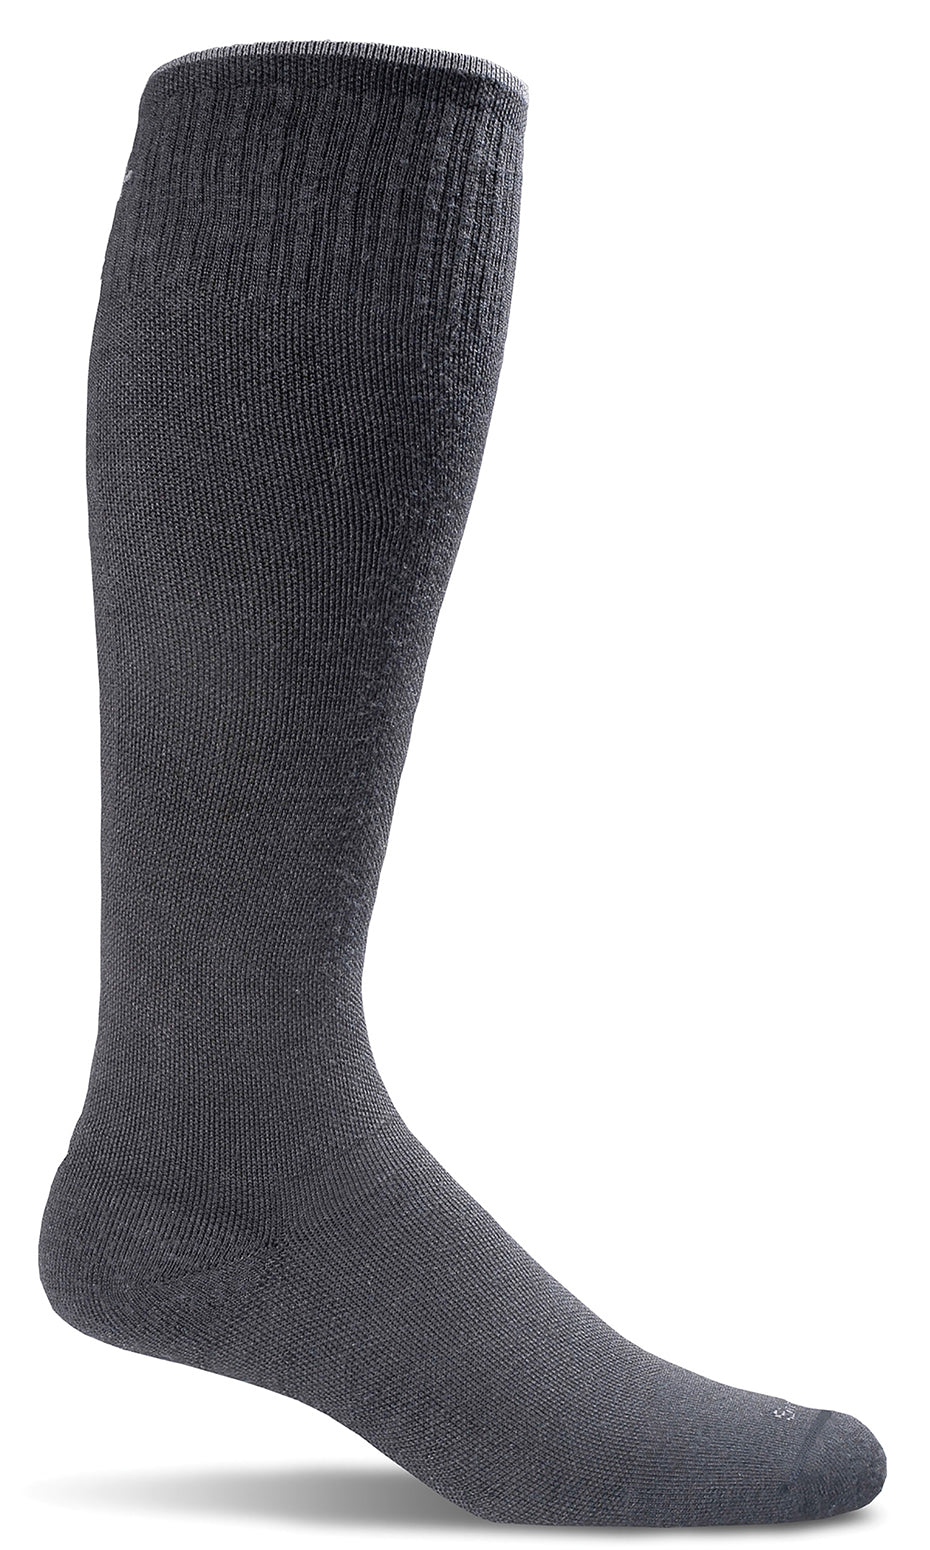 Twister - Black Solid Firm Compression